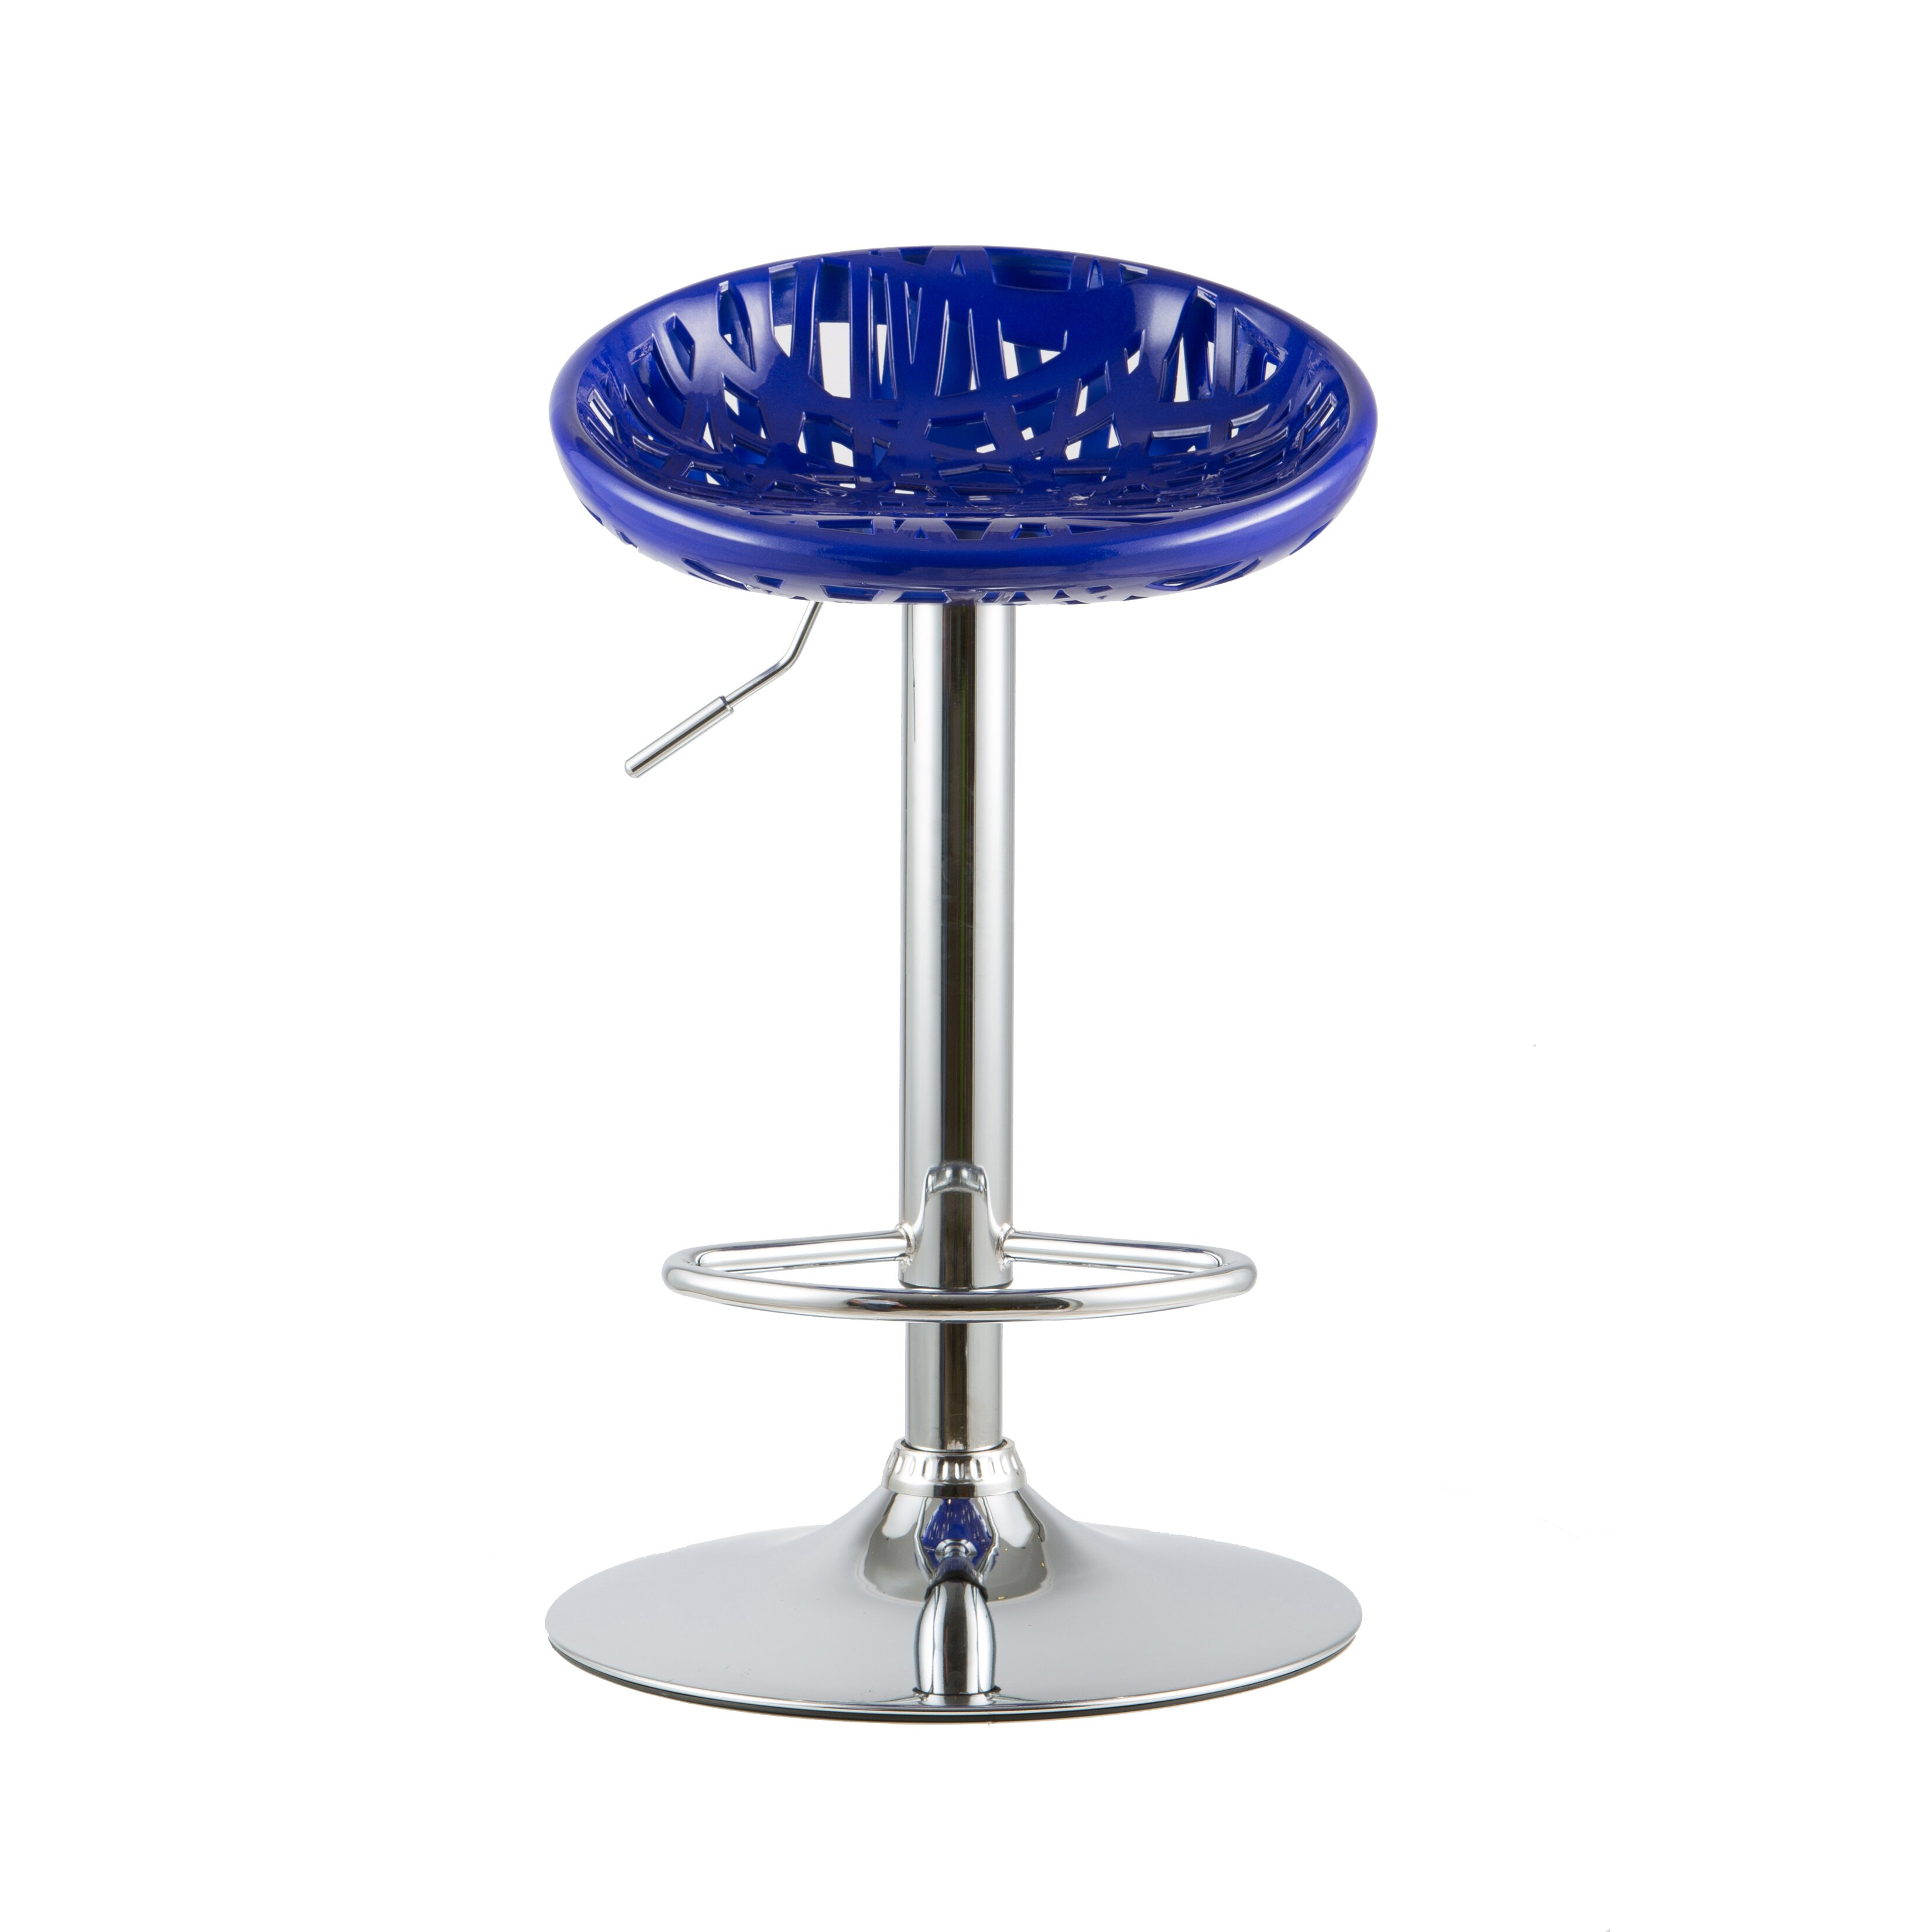 attractiondesignhome adjustable height swivel bar stools wayfair